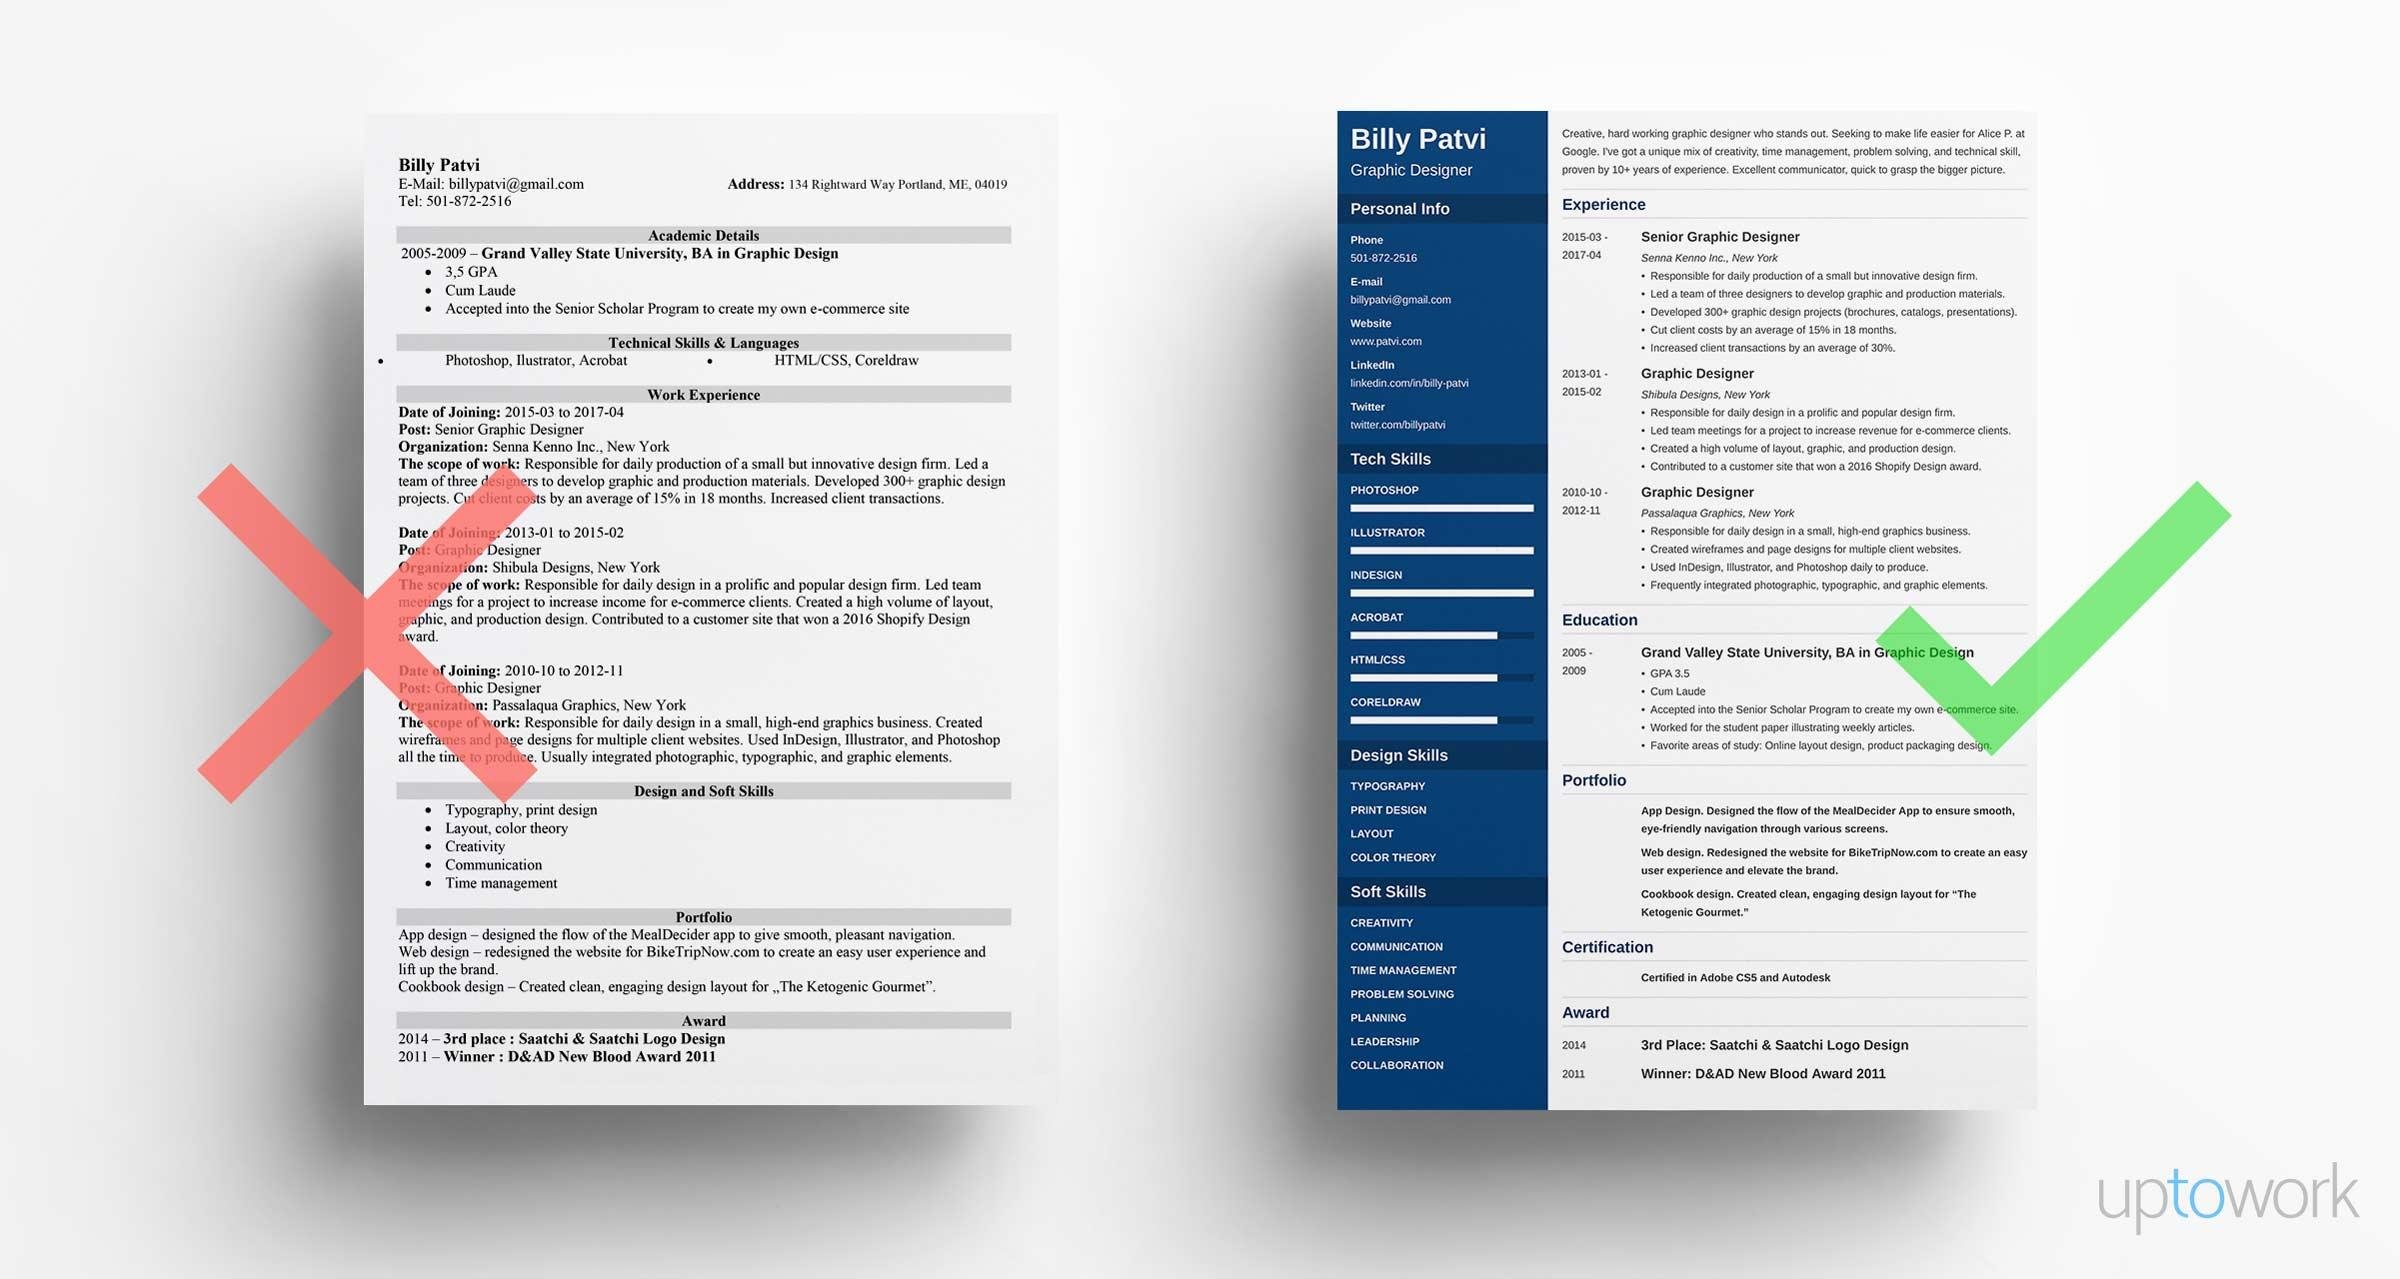 graphic designer resume examples and design tips for senior sample samples filipino Resume Senior Graphic Designer Resume Sample